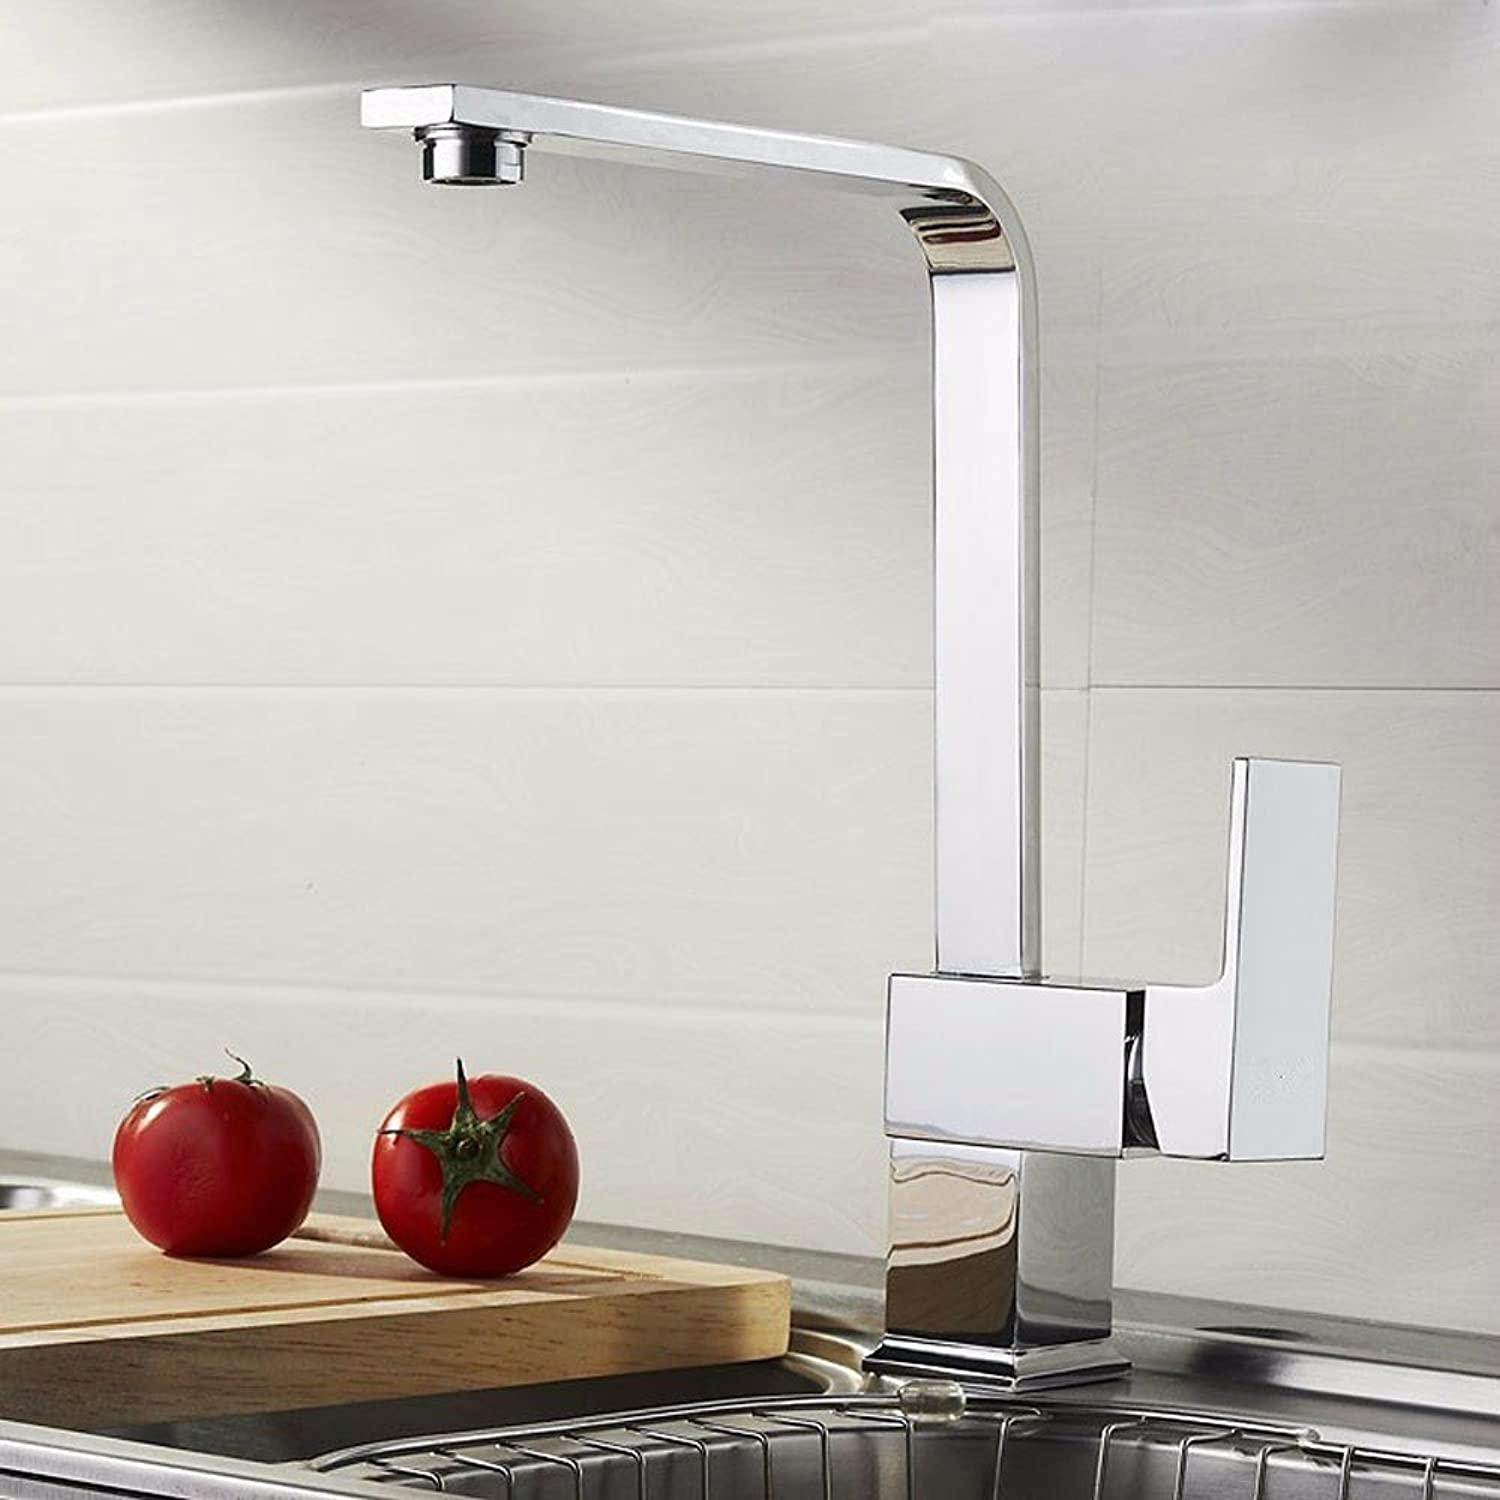 Commercial Single Lever Pull Down Kitchen Sink Faucet Brass Constructed Polished Kitchen Faucet Hot and Cold Sink Faucet Sink Faucet Full Copper Body redatable Faucet